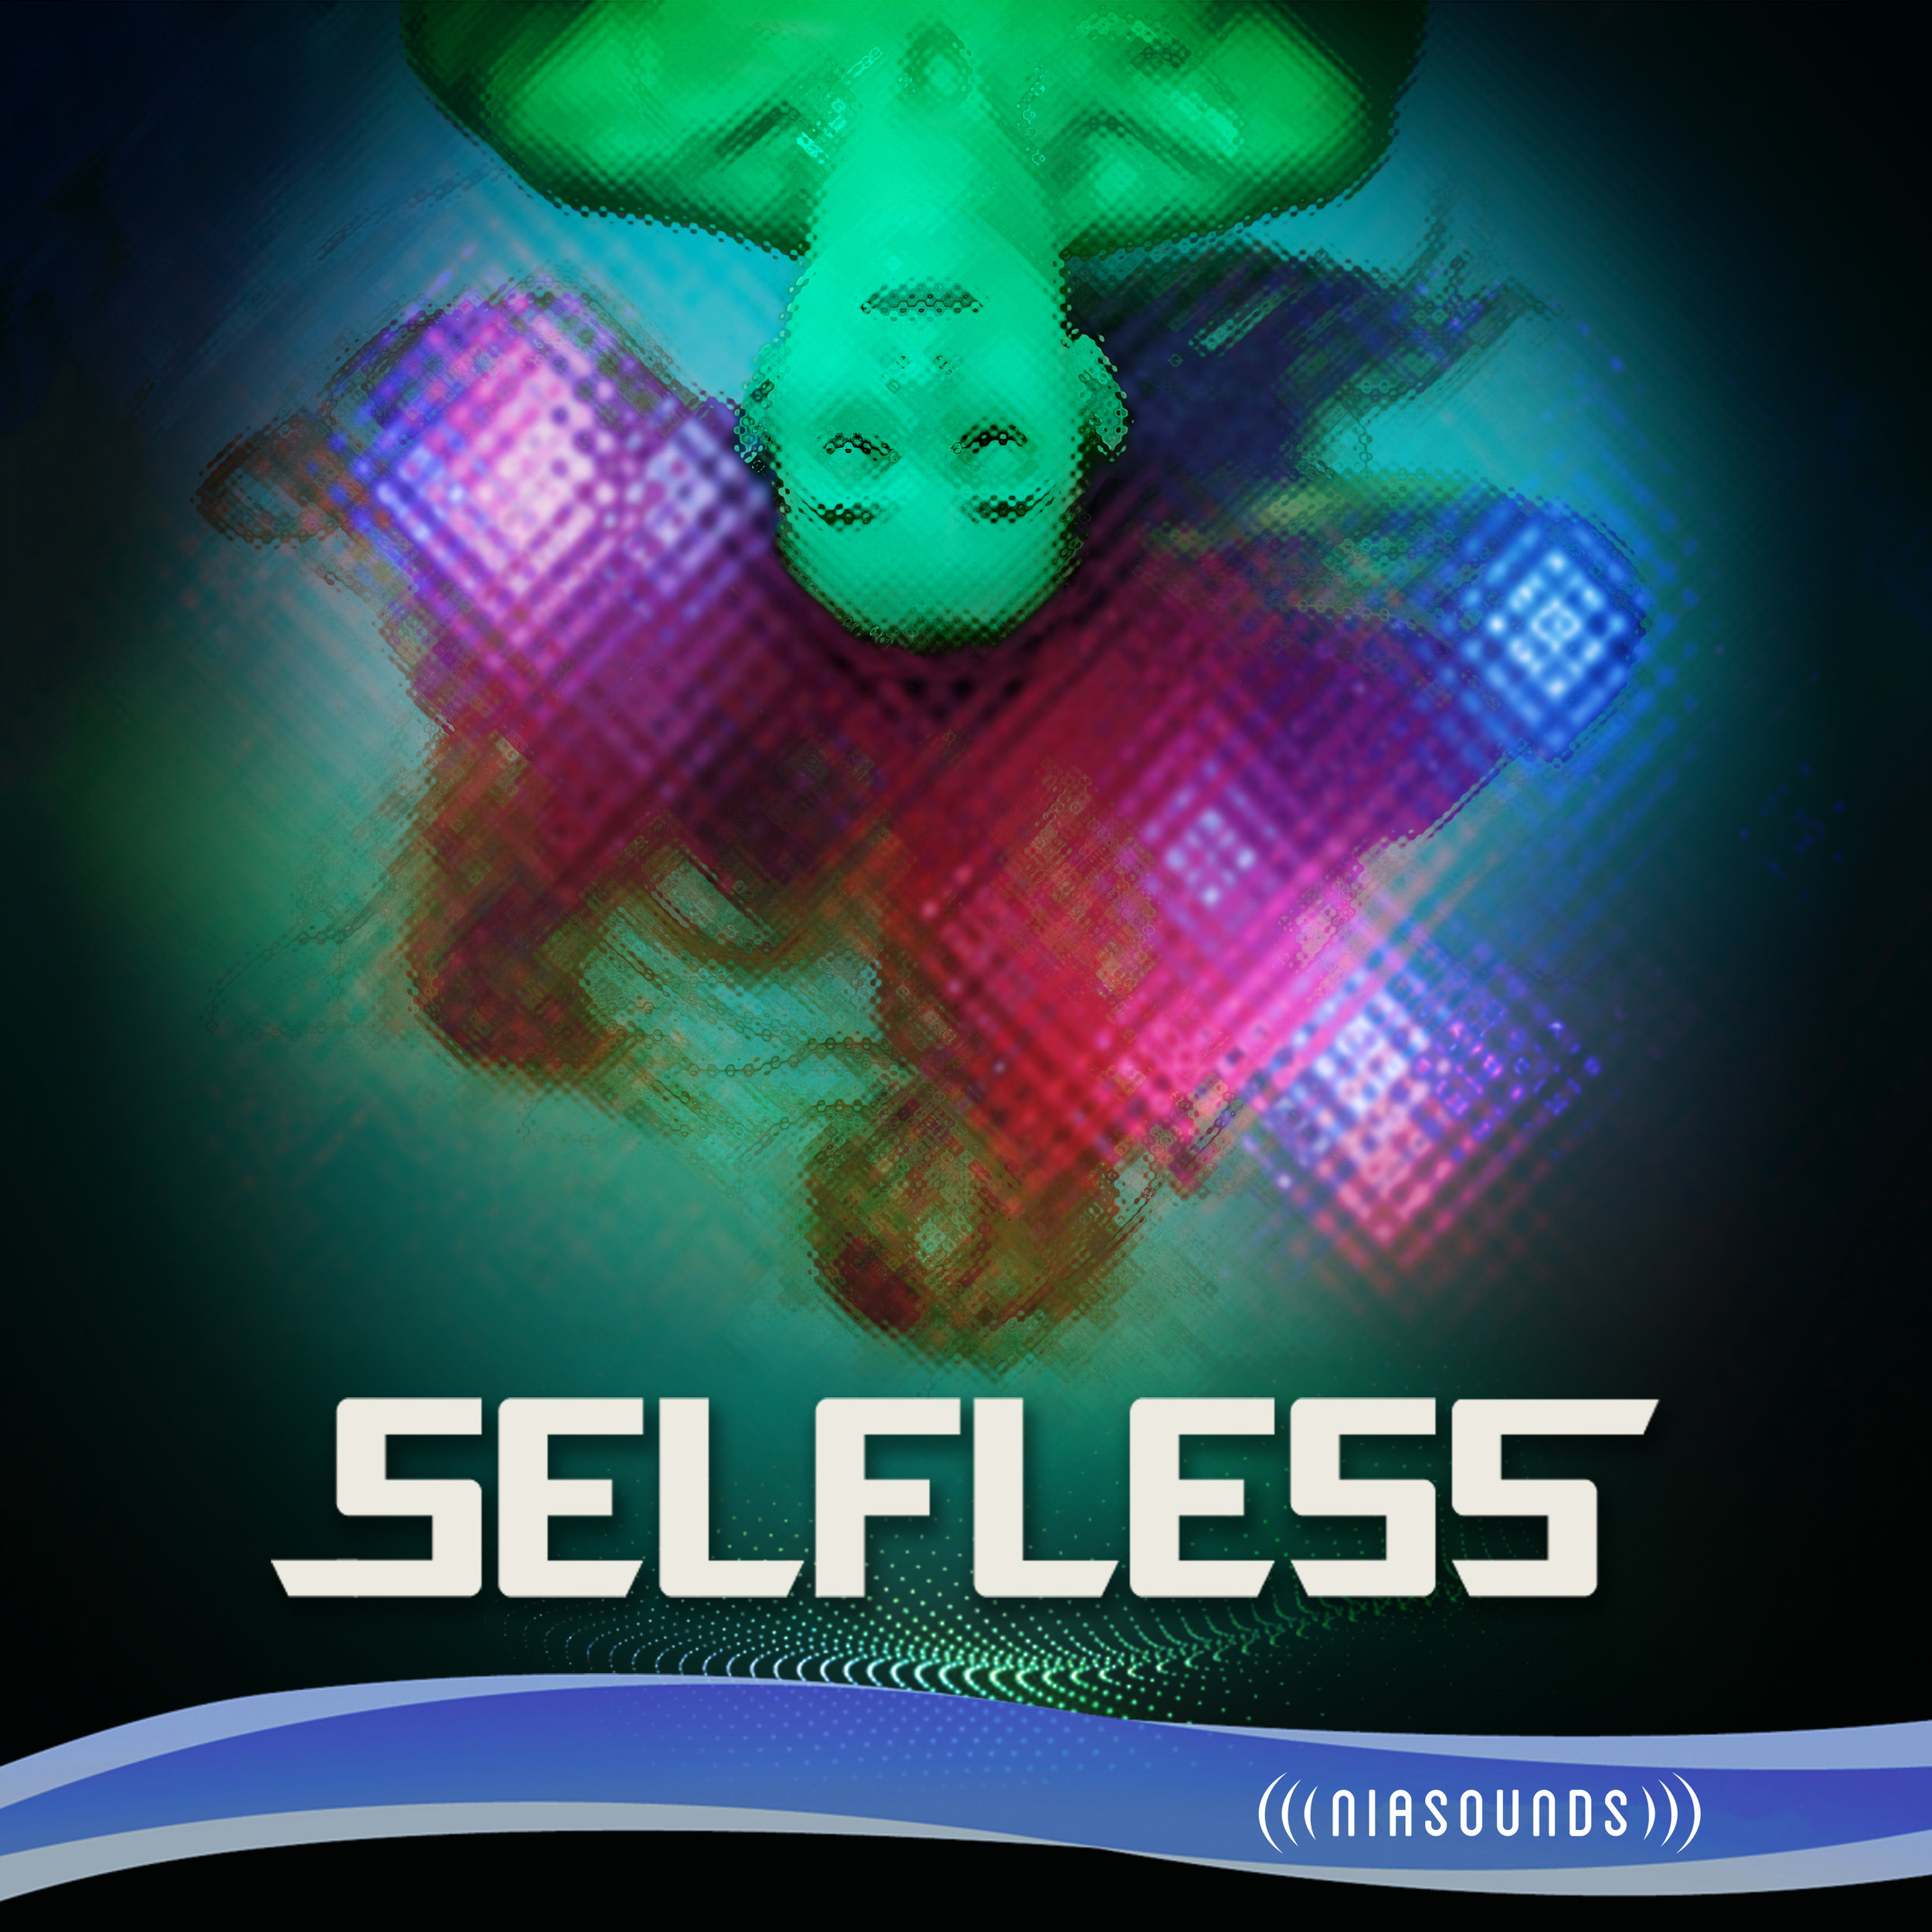 SELFLESS_coverartfinal_4000x4000pix copy.jpg